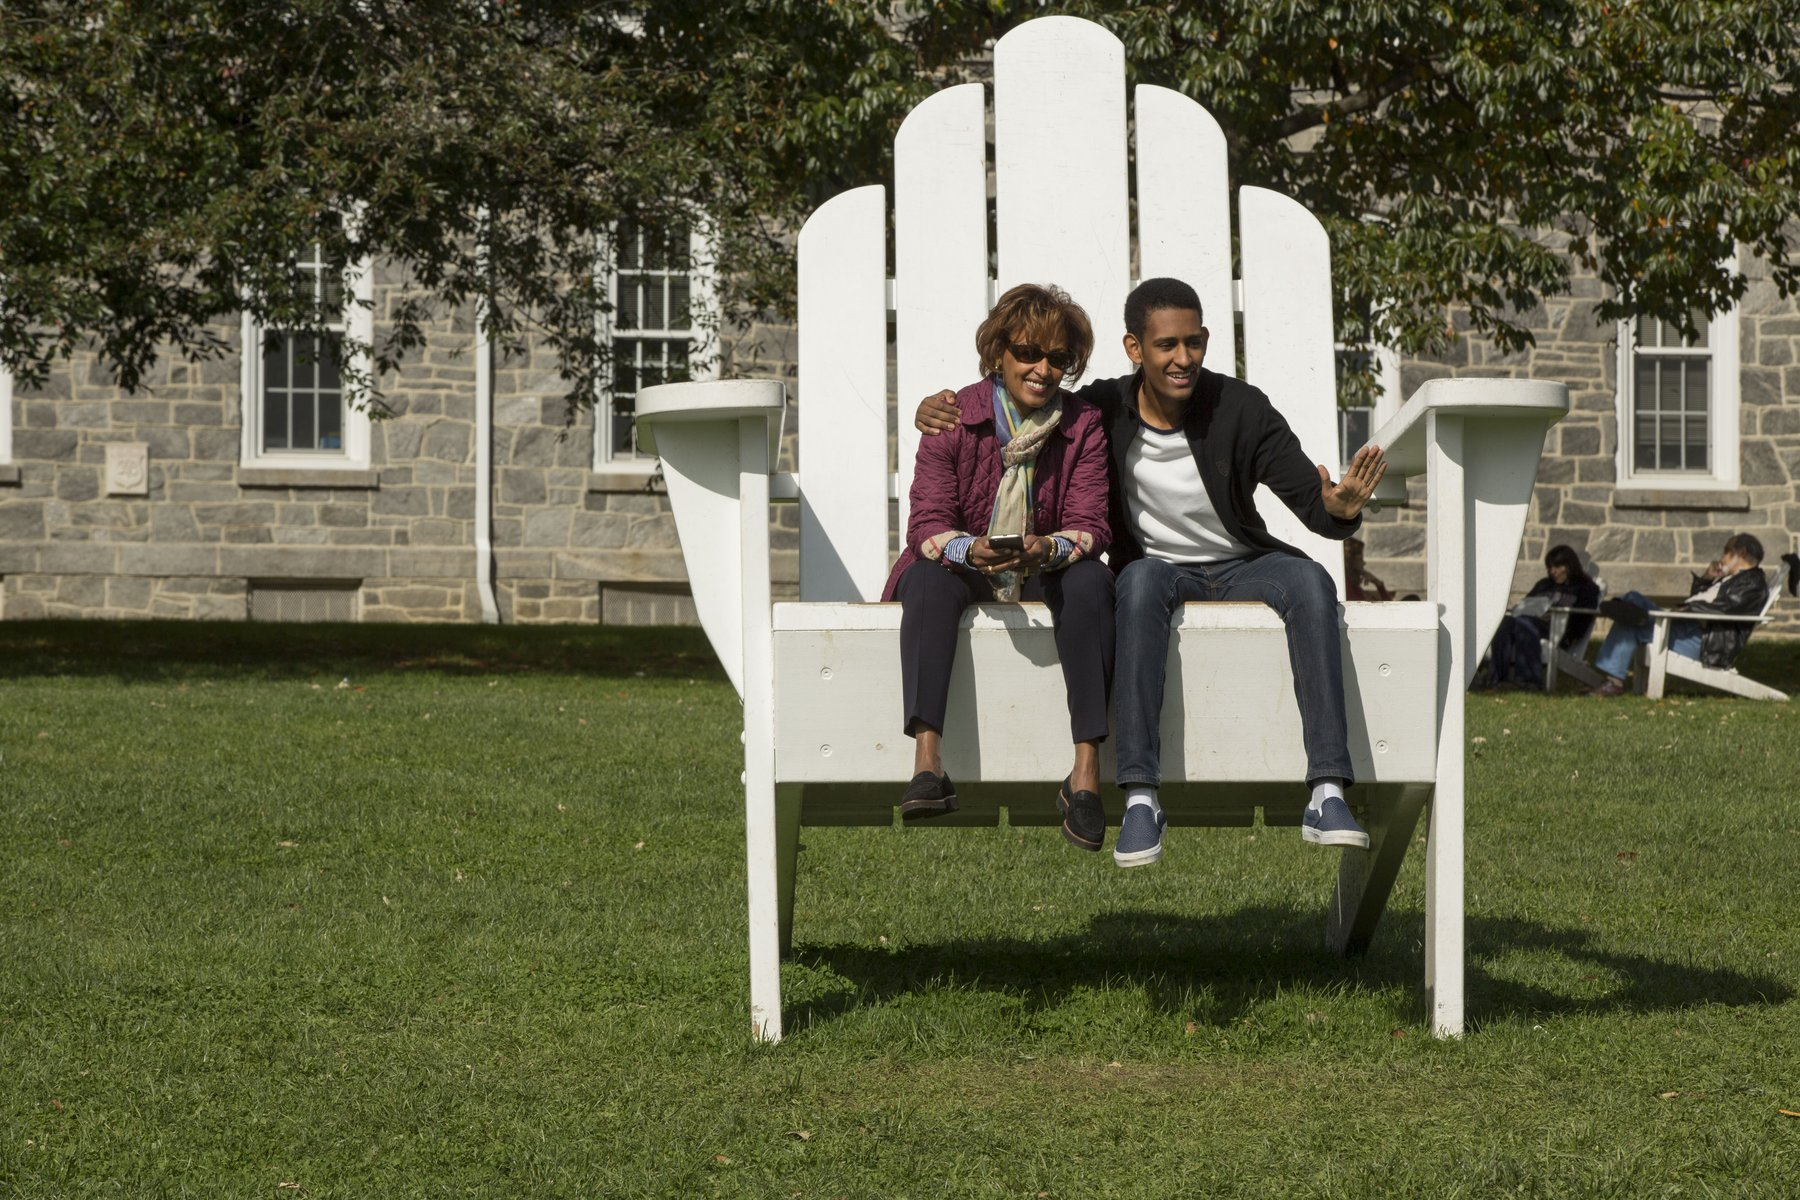 A parent and student sit together on the Big Chair